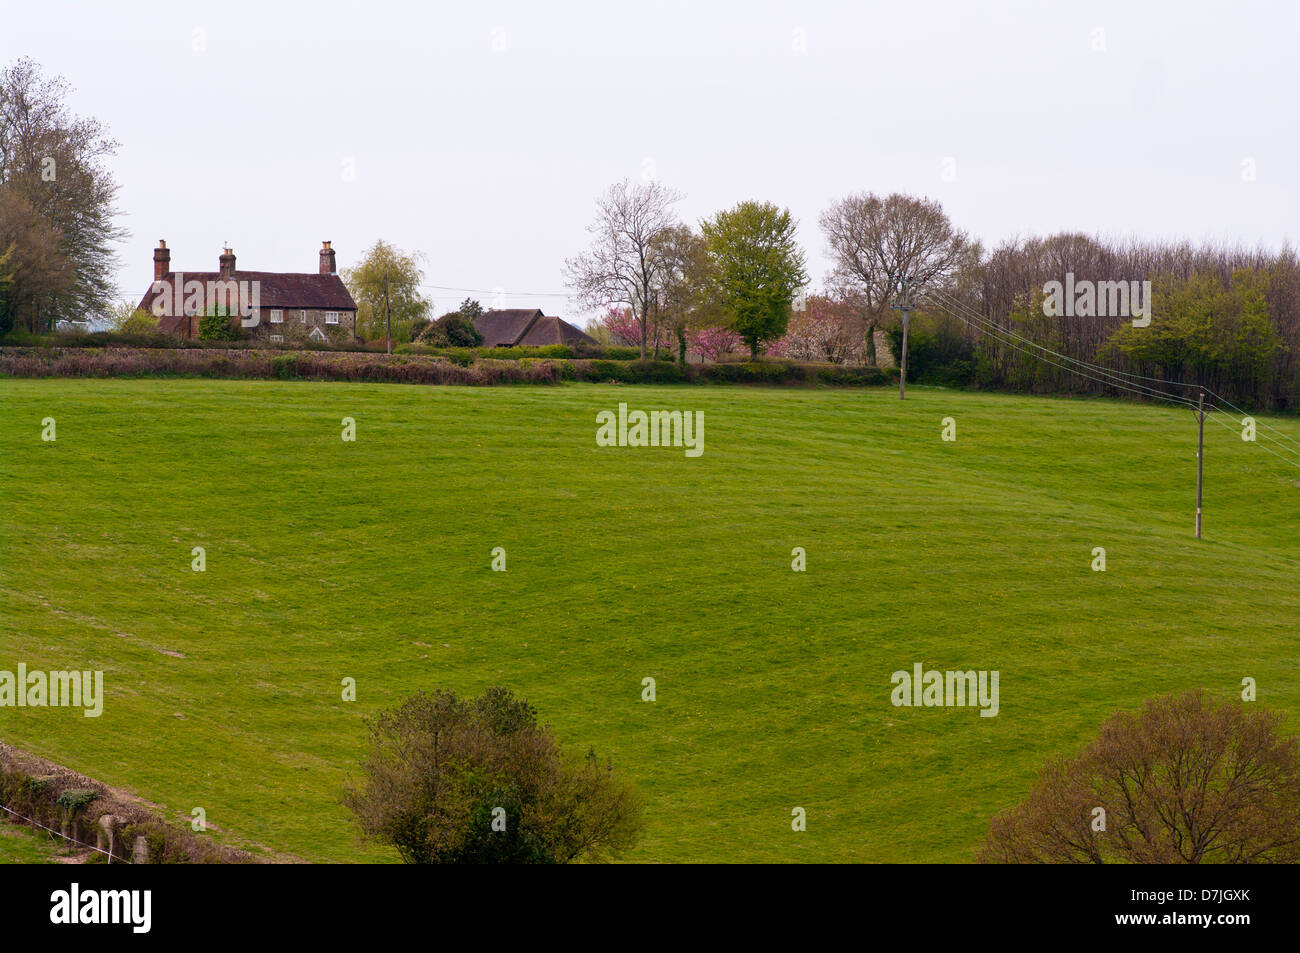 Large Country Detached House In The East Sussex Countryside Near Cripps Corner UK - Stock Image